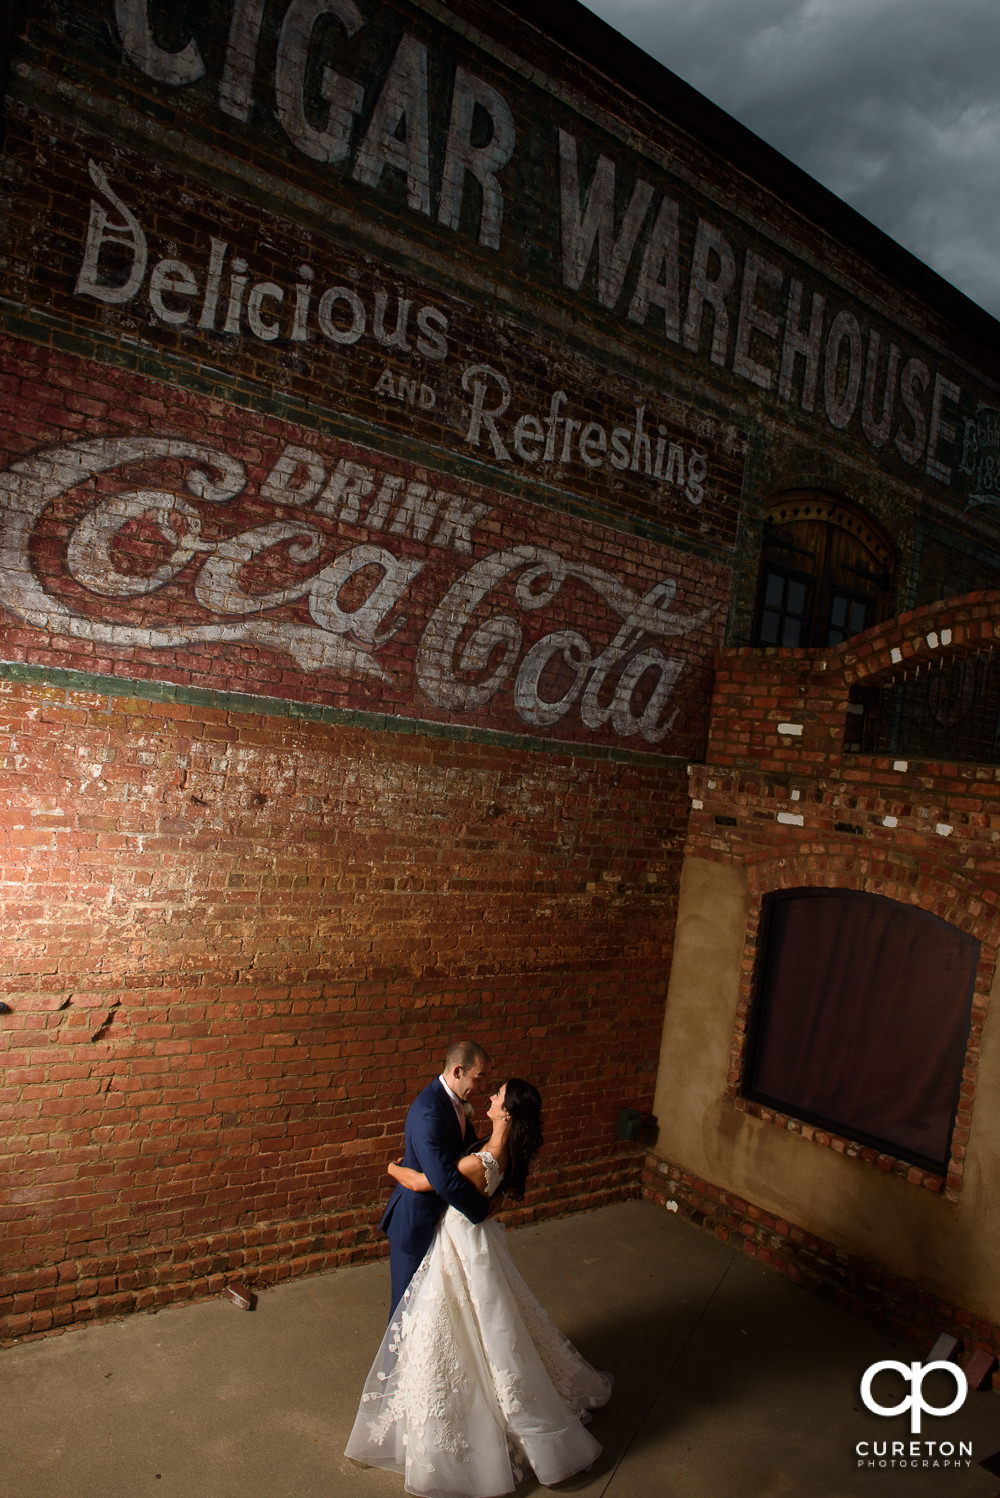 Epic photo of a bride and groom dancing under the sign at Old Cigar Warehouse.